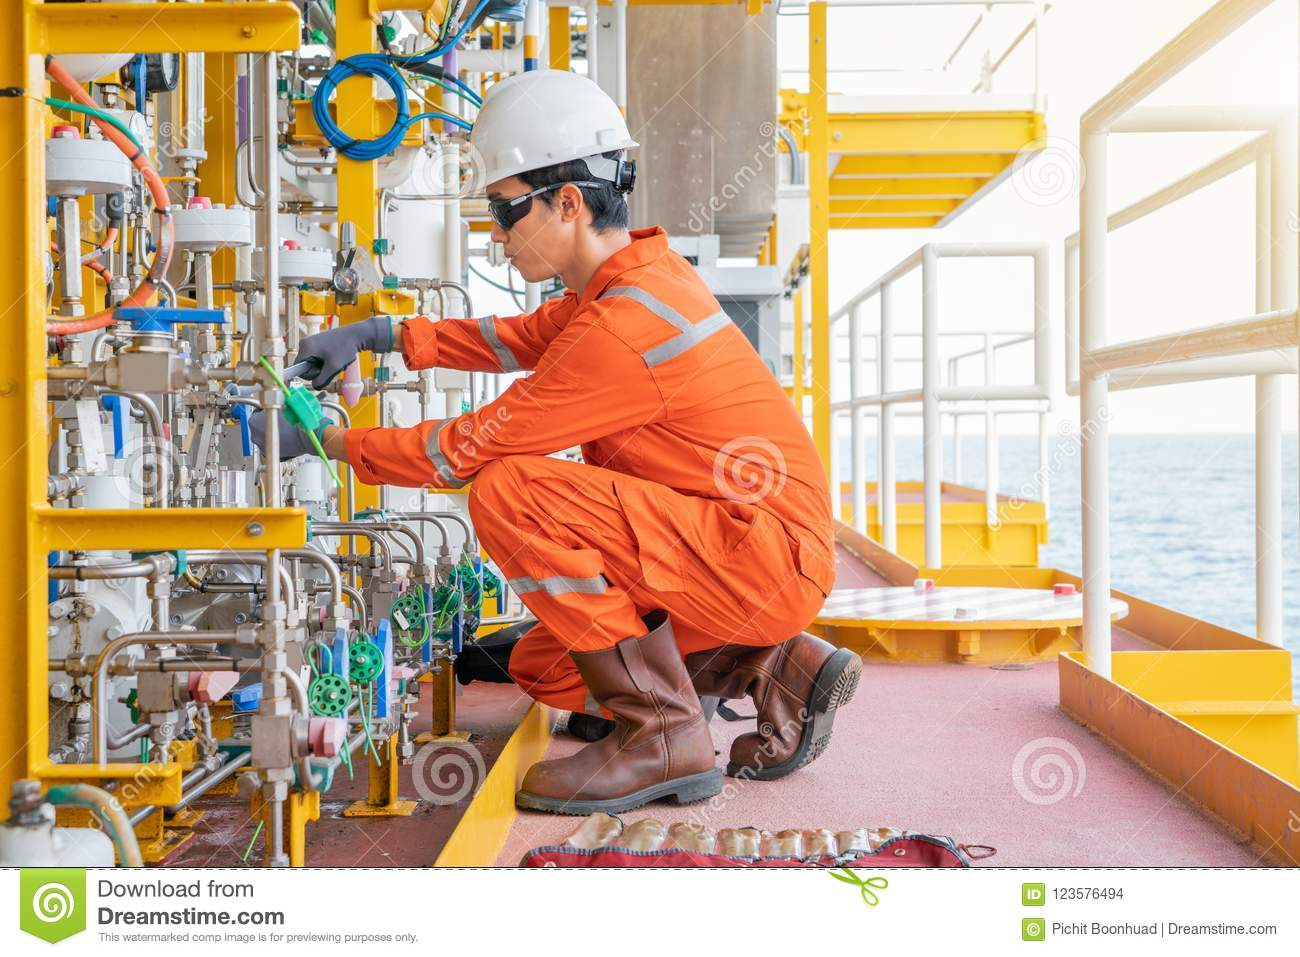 Instrument maintenance technician fixing chemical diaphragm pump at offshore oil and gas wellhead remote platform.